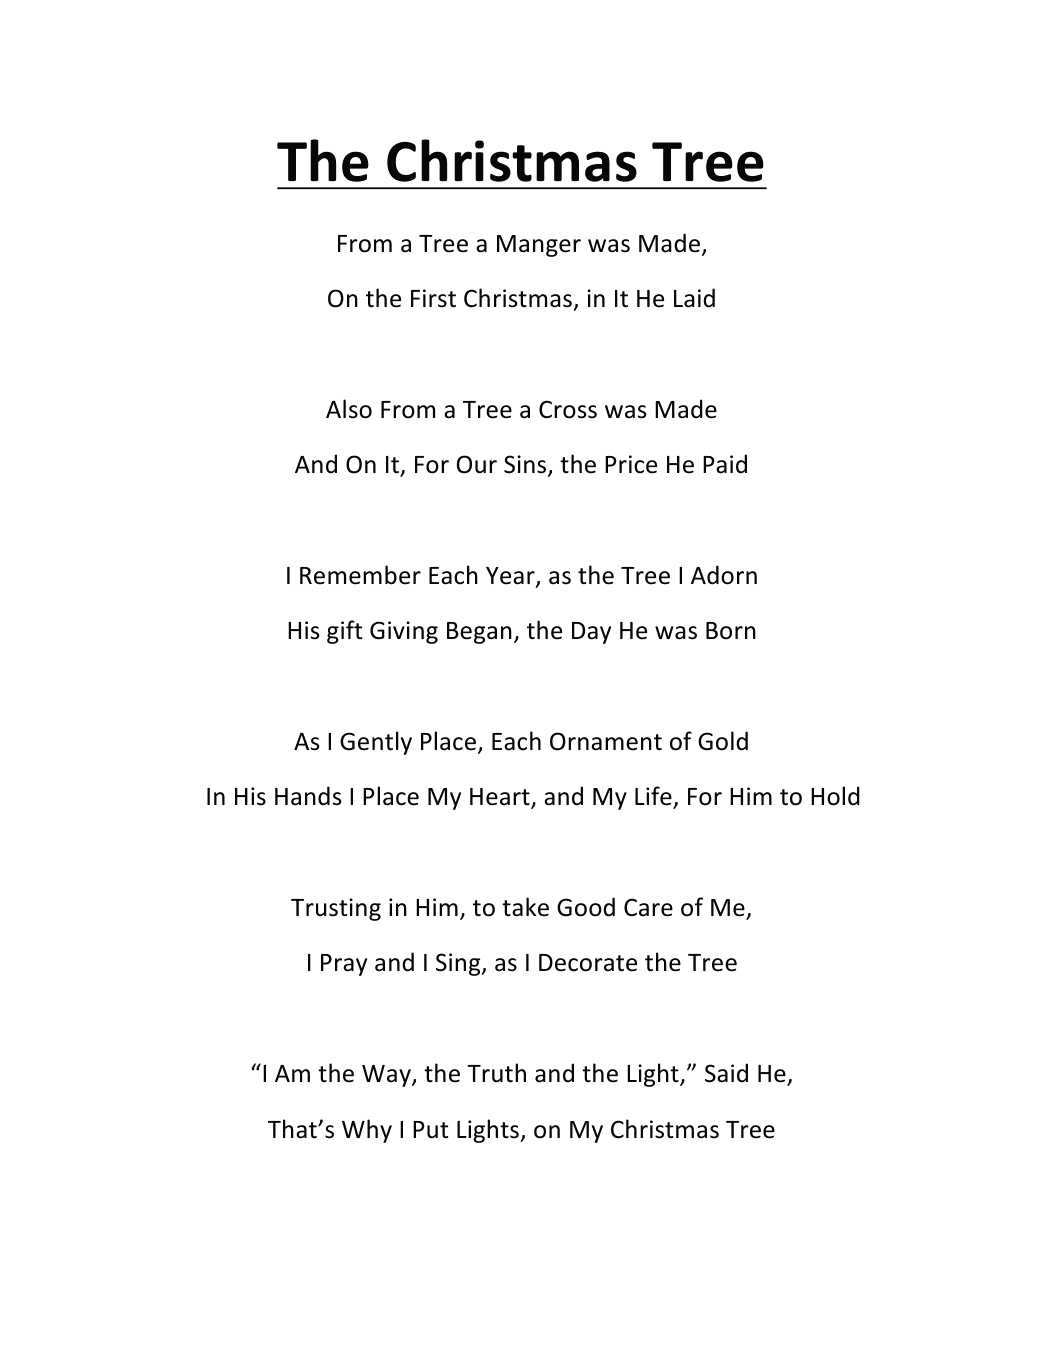 Christmas poems for church programs - The Christmas Tree Poem By K Ross My Good Friend In Christ Jesus